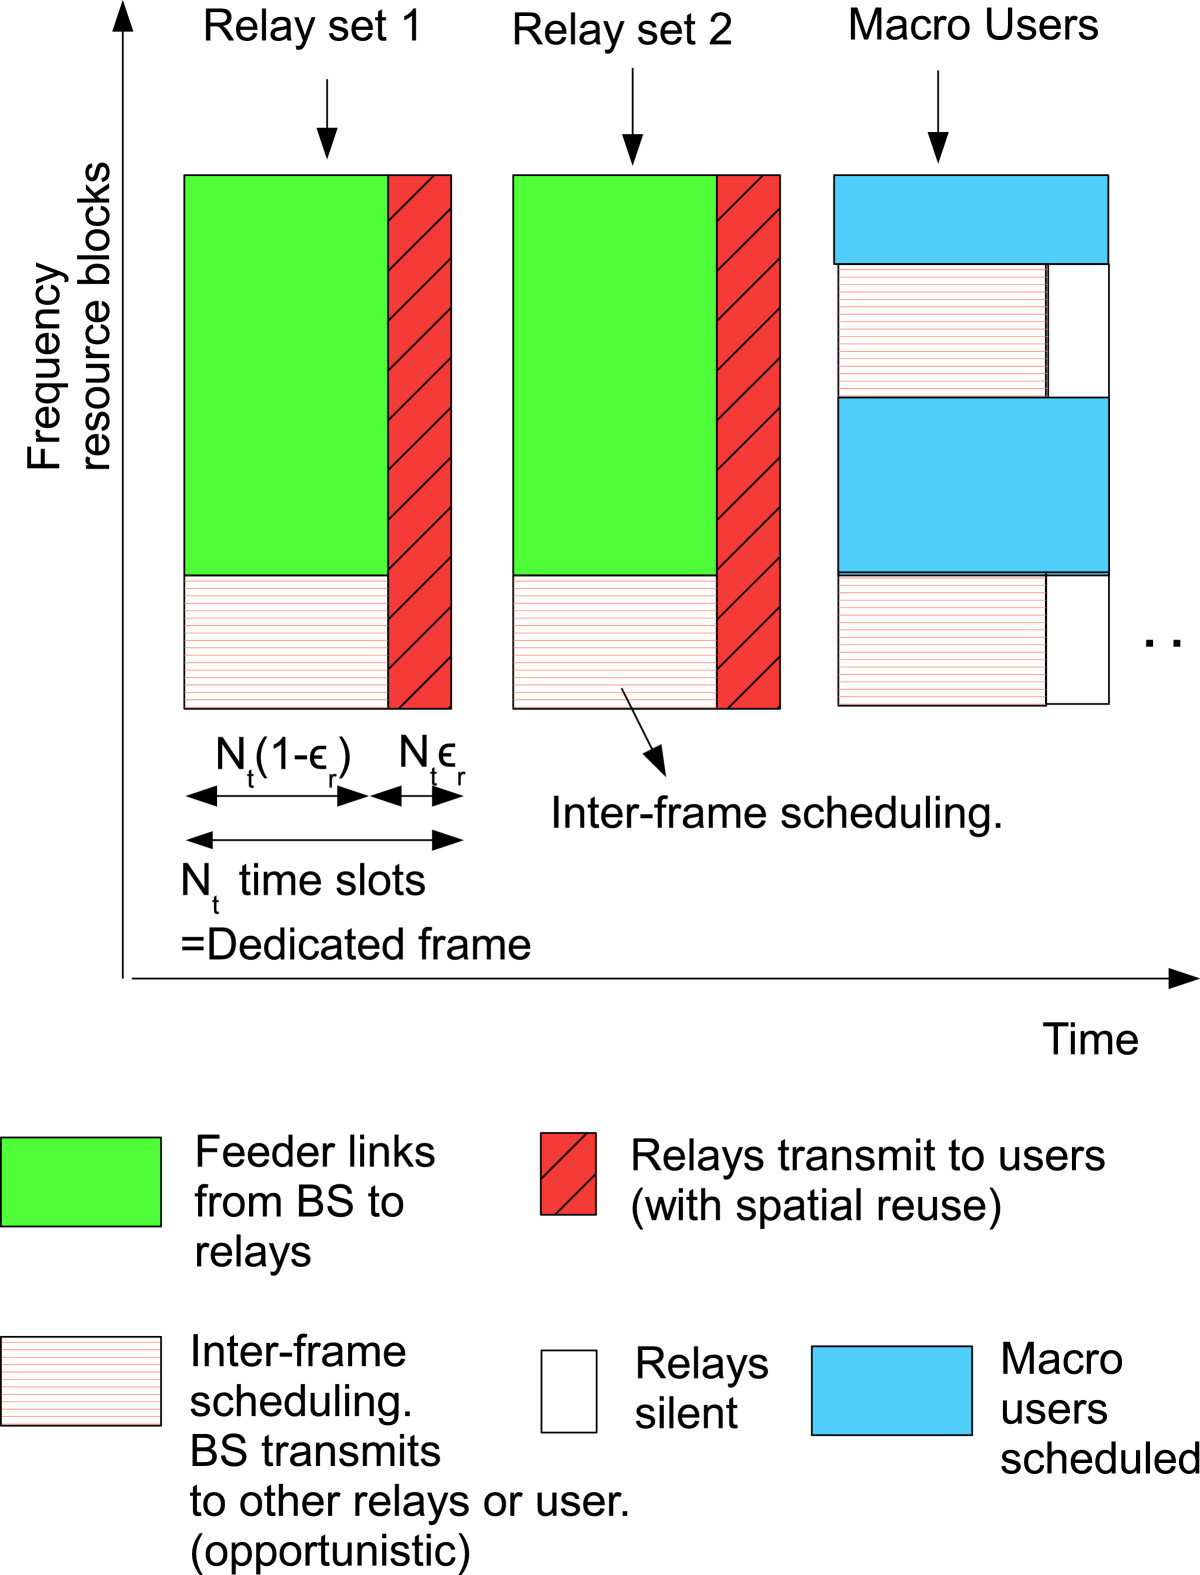 http://static-content.springer.com/image/art%3A10.1186%2F1687-1499-2012-309/MediaObjects/13638_2012_Article_433_Fig1_HTML.jpg